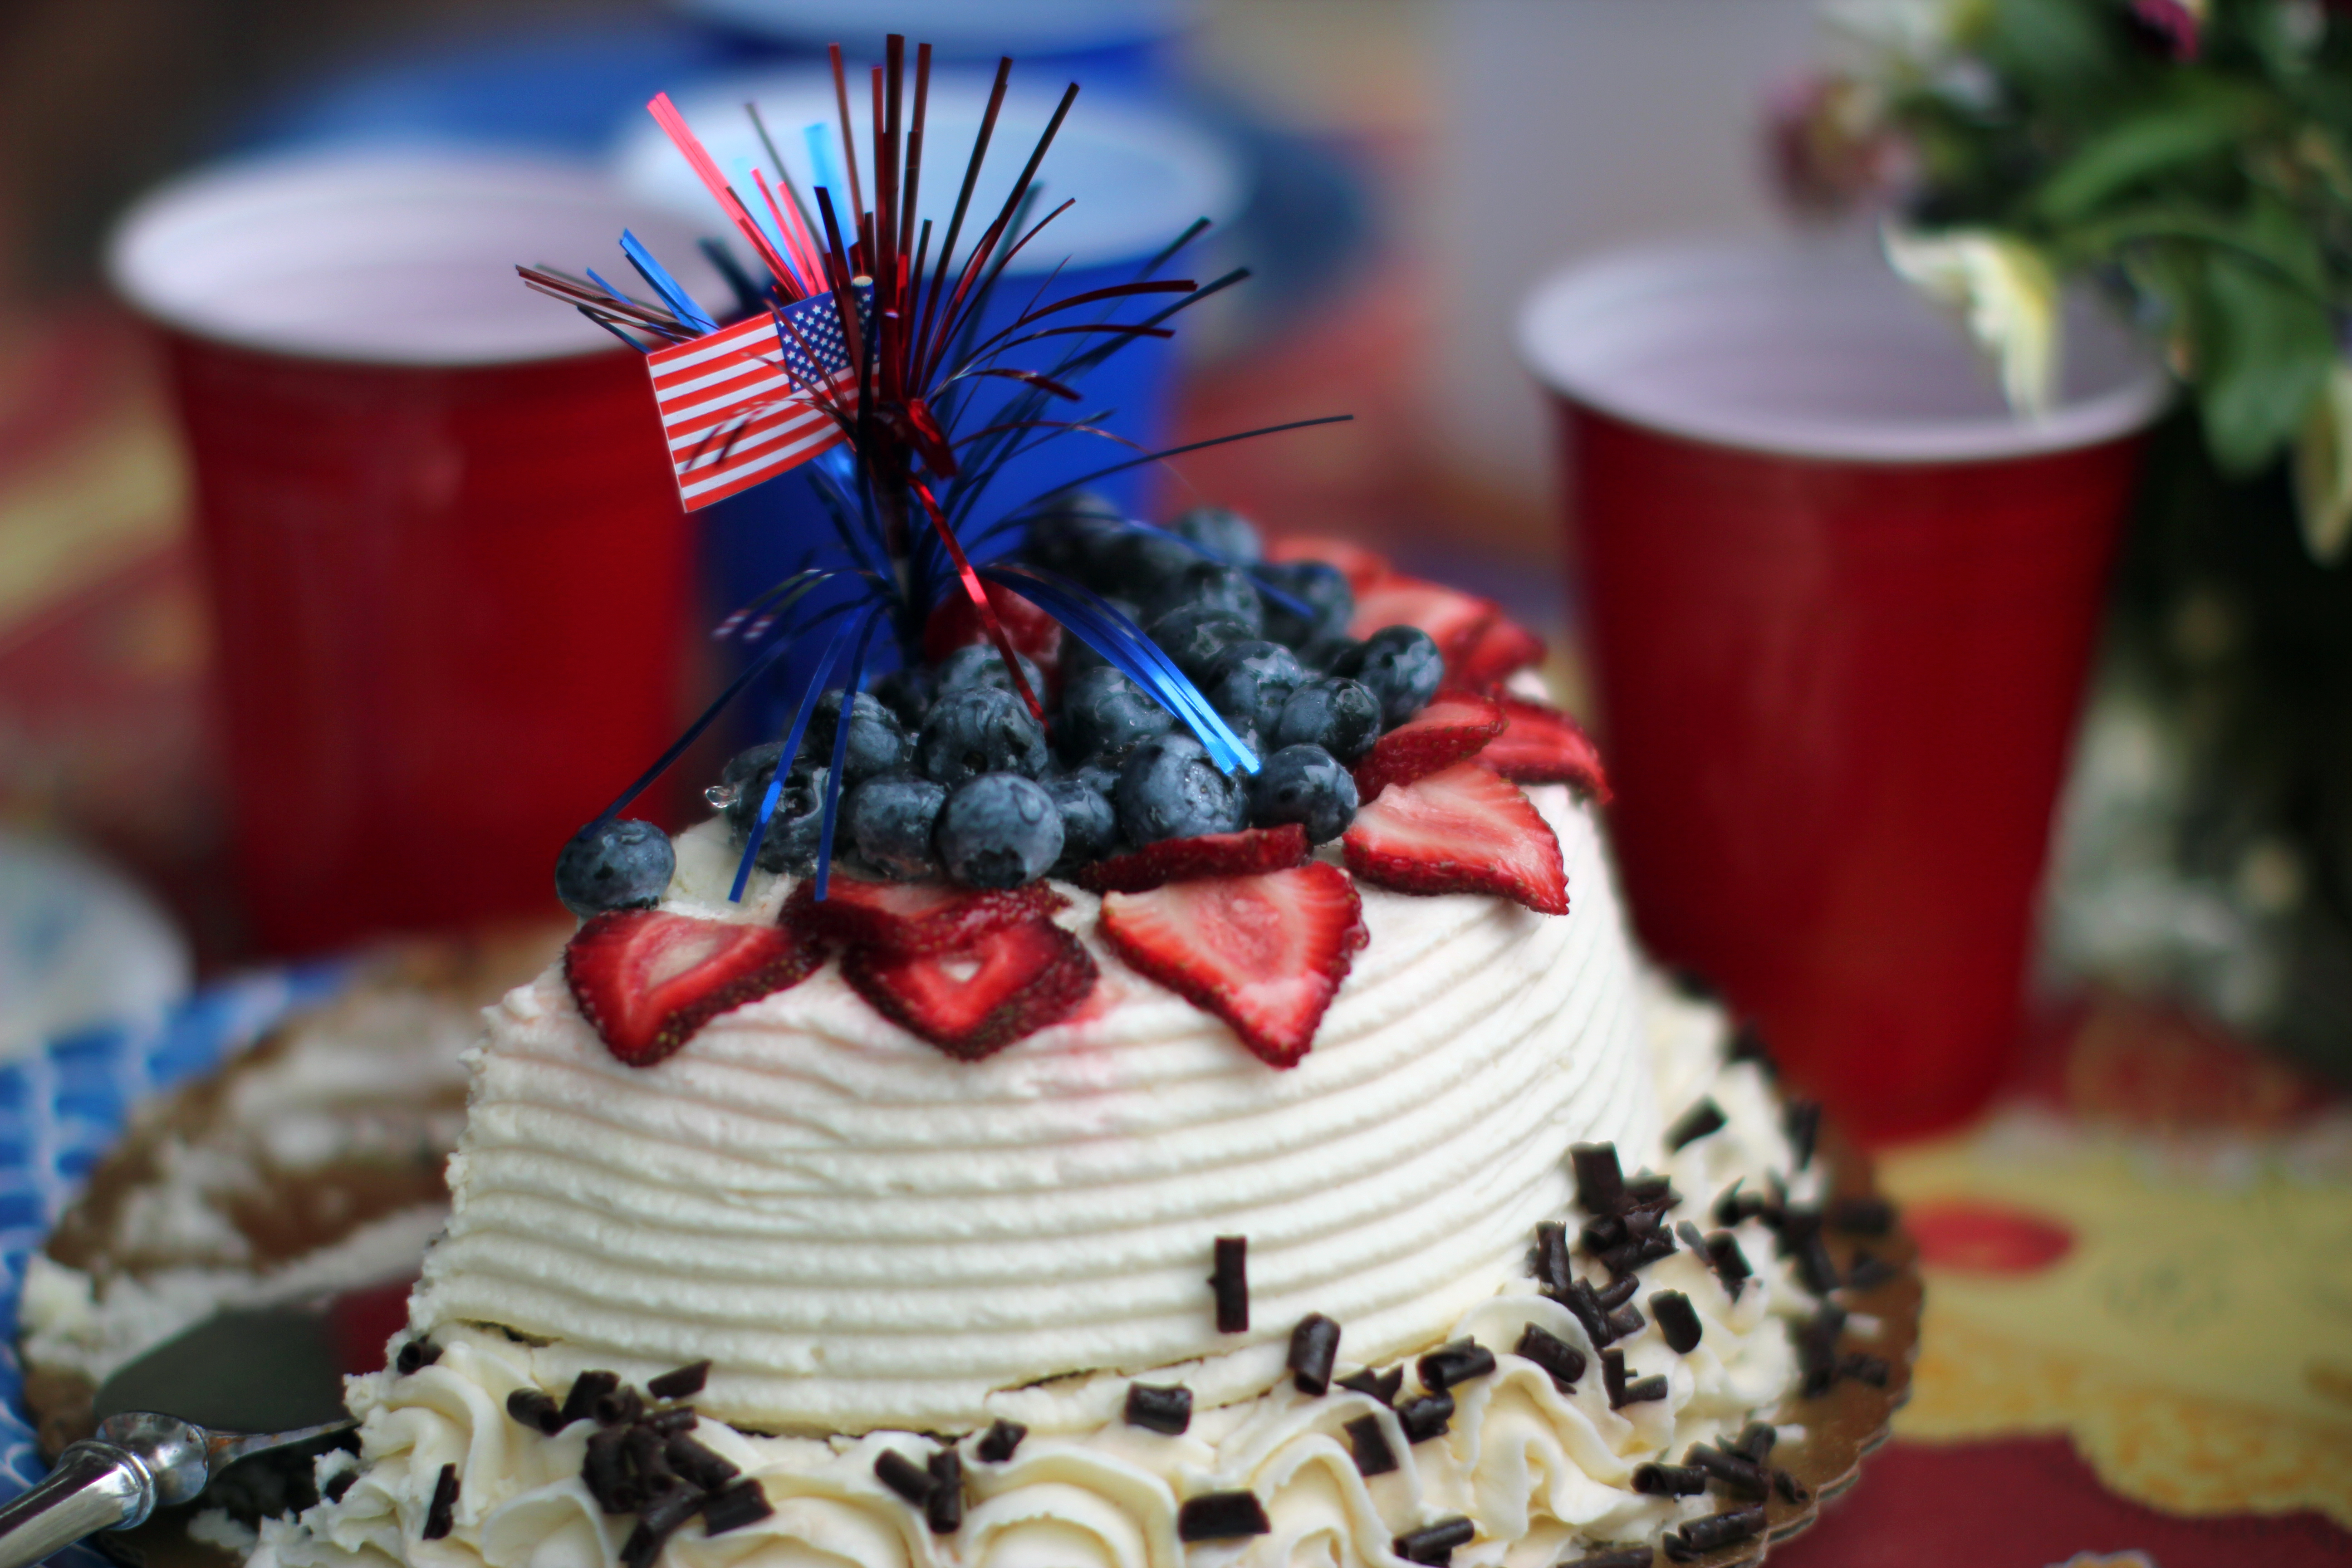 Description Fourth of July Cake.jpg